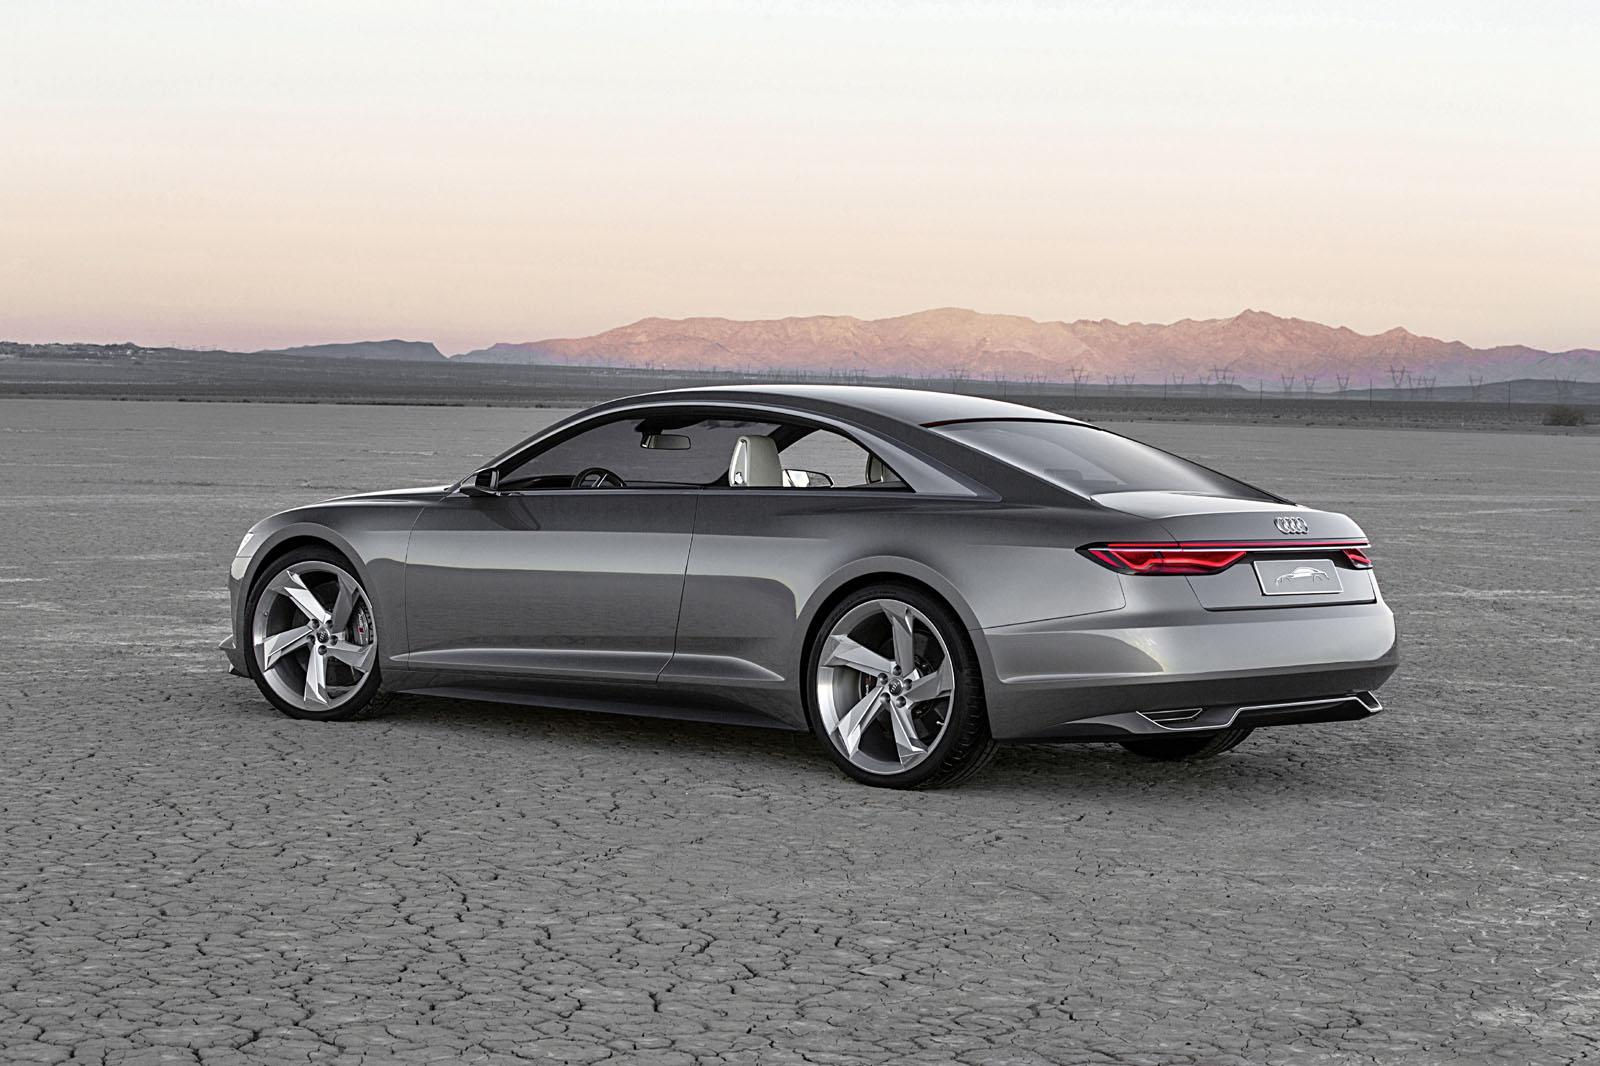 audi prologue gets hybrid v8 system and piloted driving tech for ces 2015 autoevolution. Black Bedroom Furniture Sets. Home Design Ideas